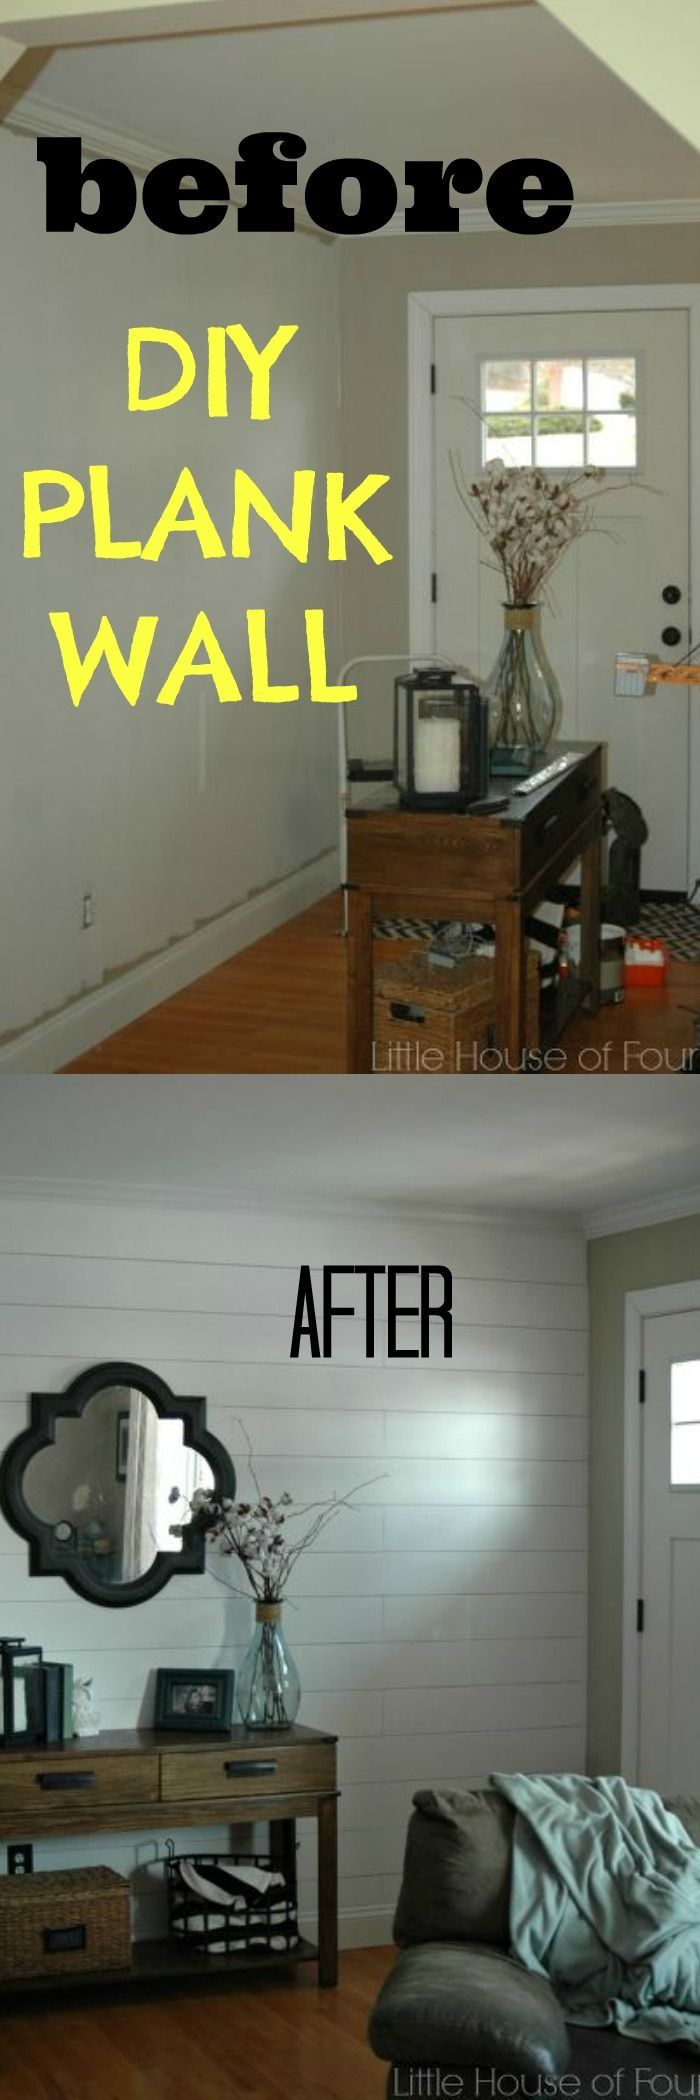 DIY Plank wall for $50.00 !